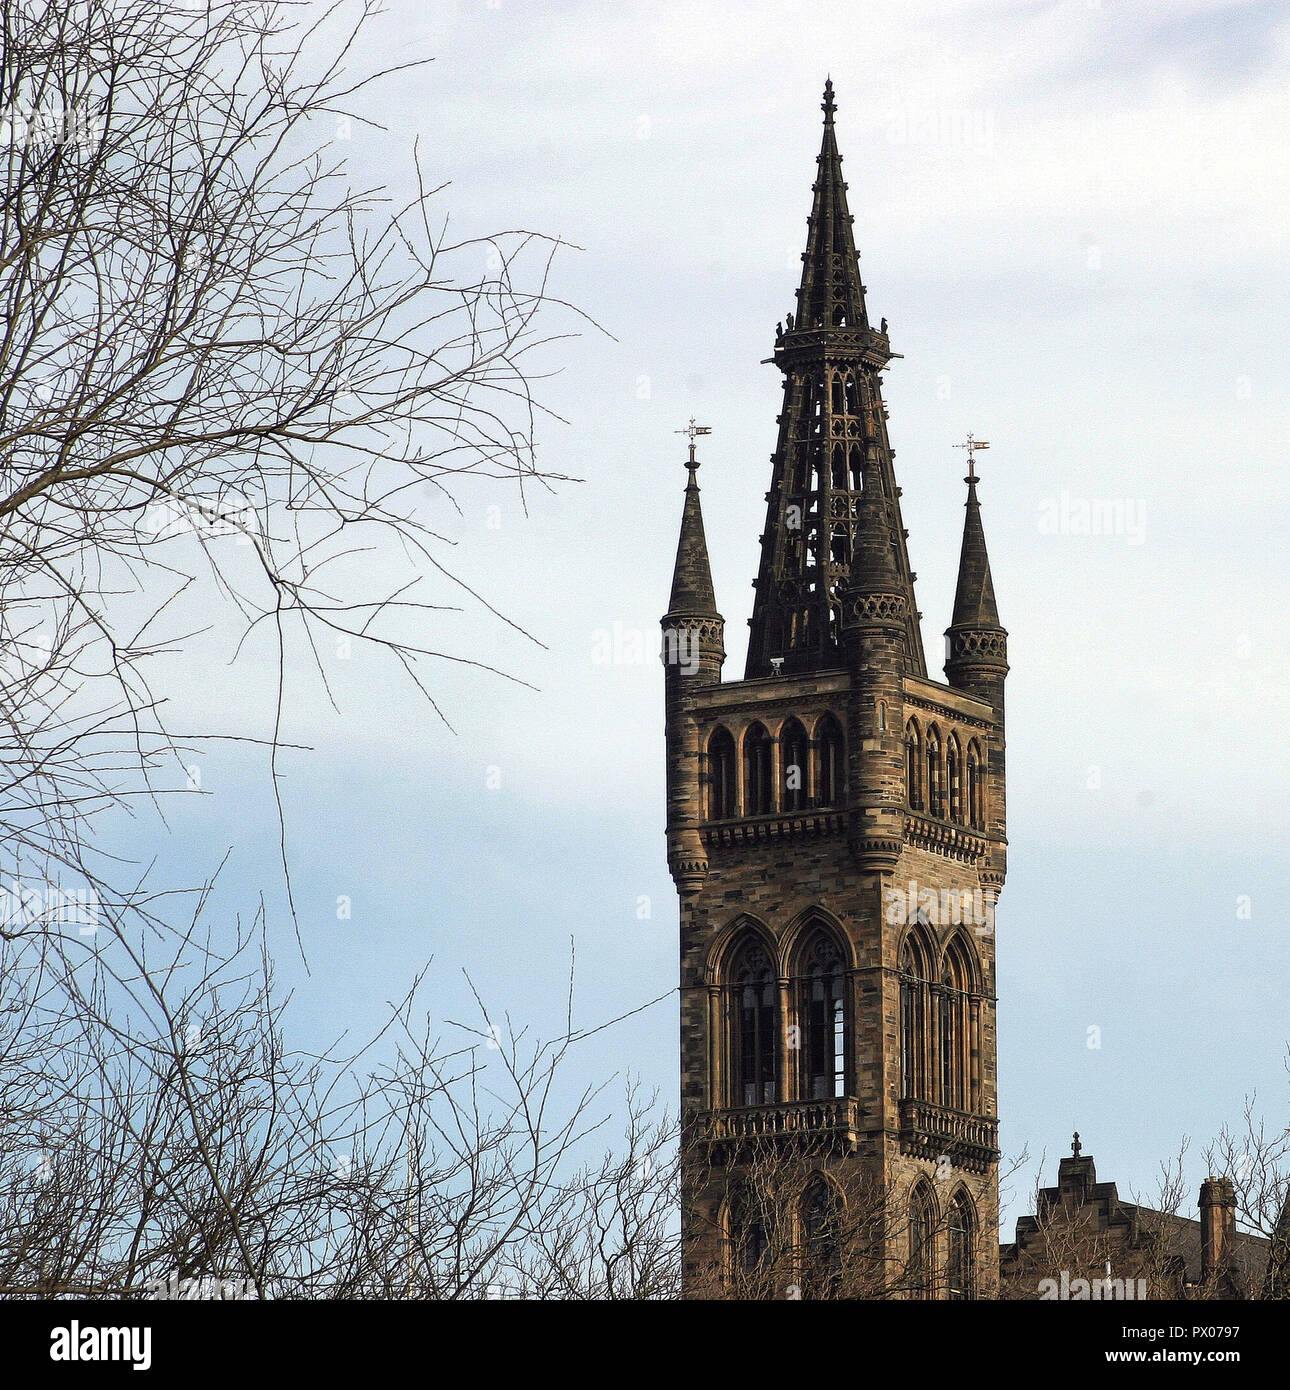 The iconic, gothic, bell tower of Glasgow University, in the west end, is one of the most recognizable landmarks in the city of Glasgow. - Stock Image